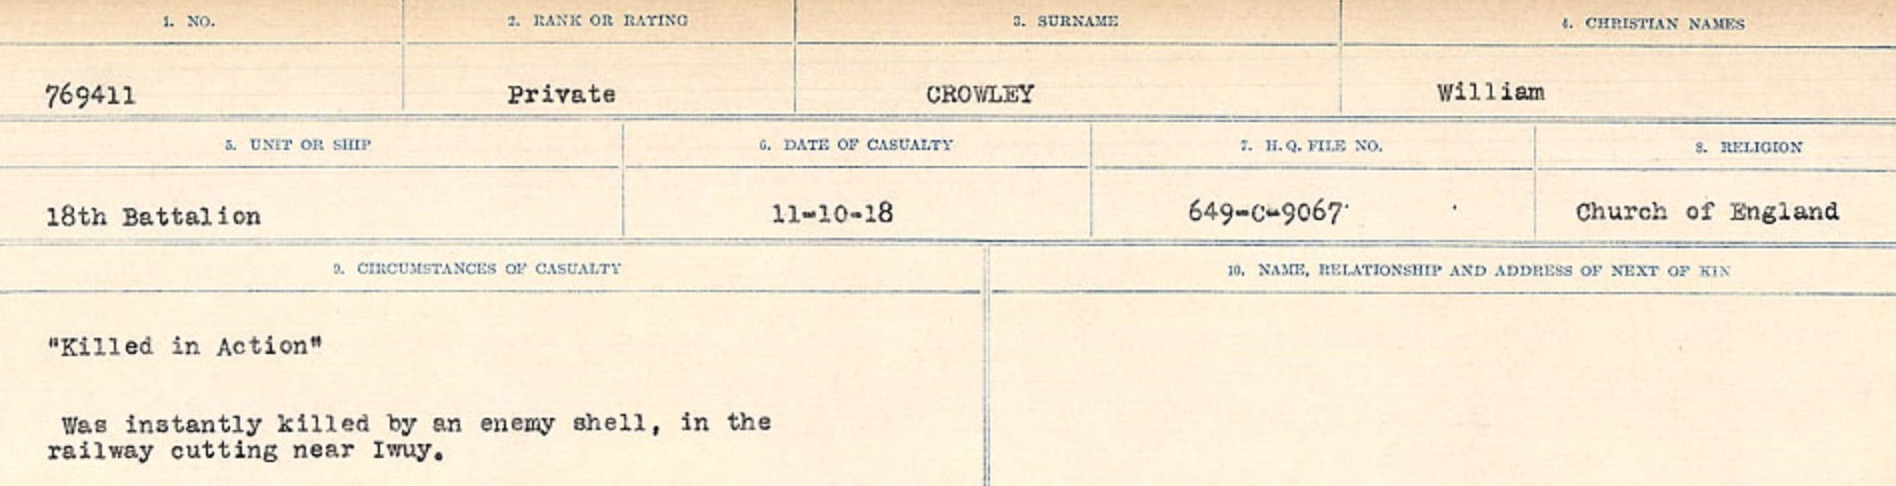 Circumstances of death registers – Source: Library and Archives Canada. CIRCUMSTANCES OF DEATH REGISTERS, FIRST WORLD WAR Surnames: Crossley to Cyrs. Microform Sequence 25; Volume Number 31829_B016734. Reference RG150, 1992-93/314, 169. Page 165 of 890.